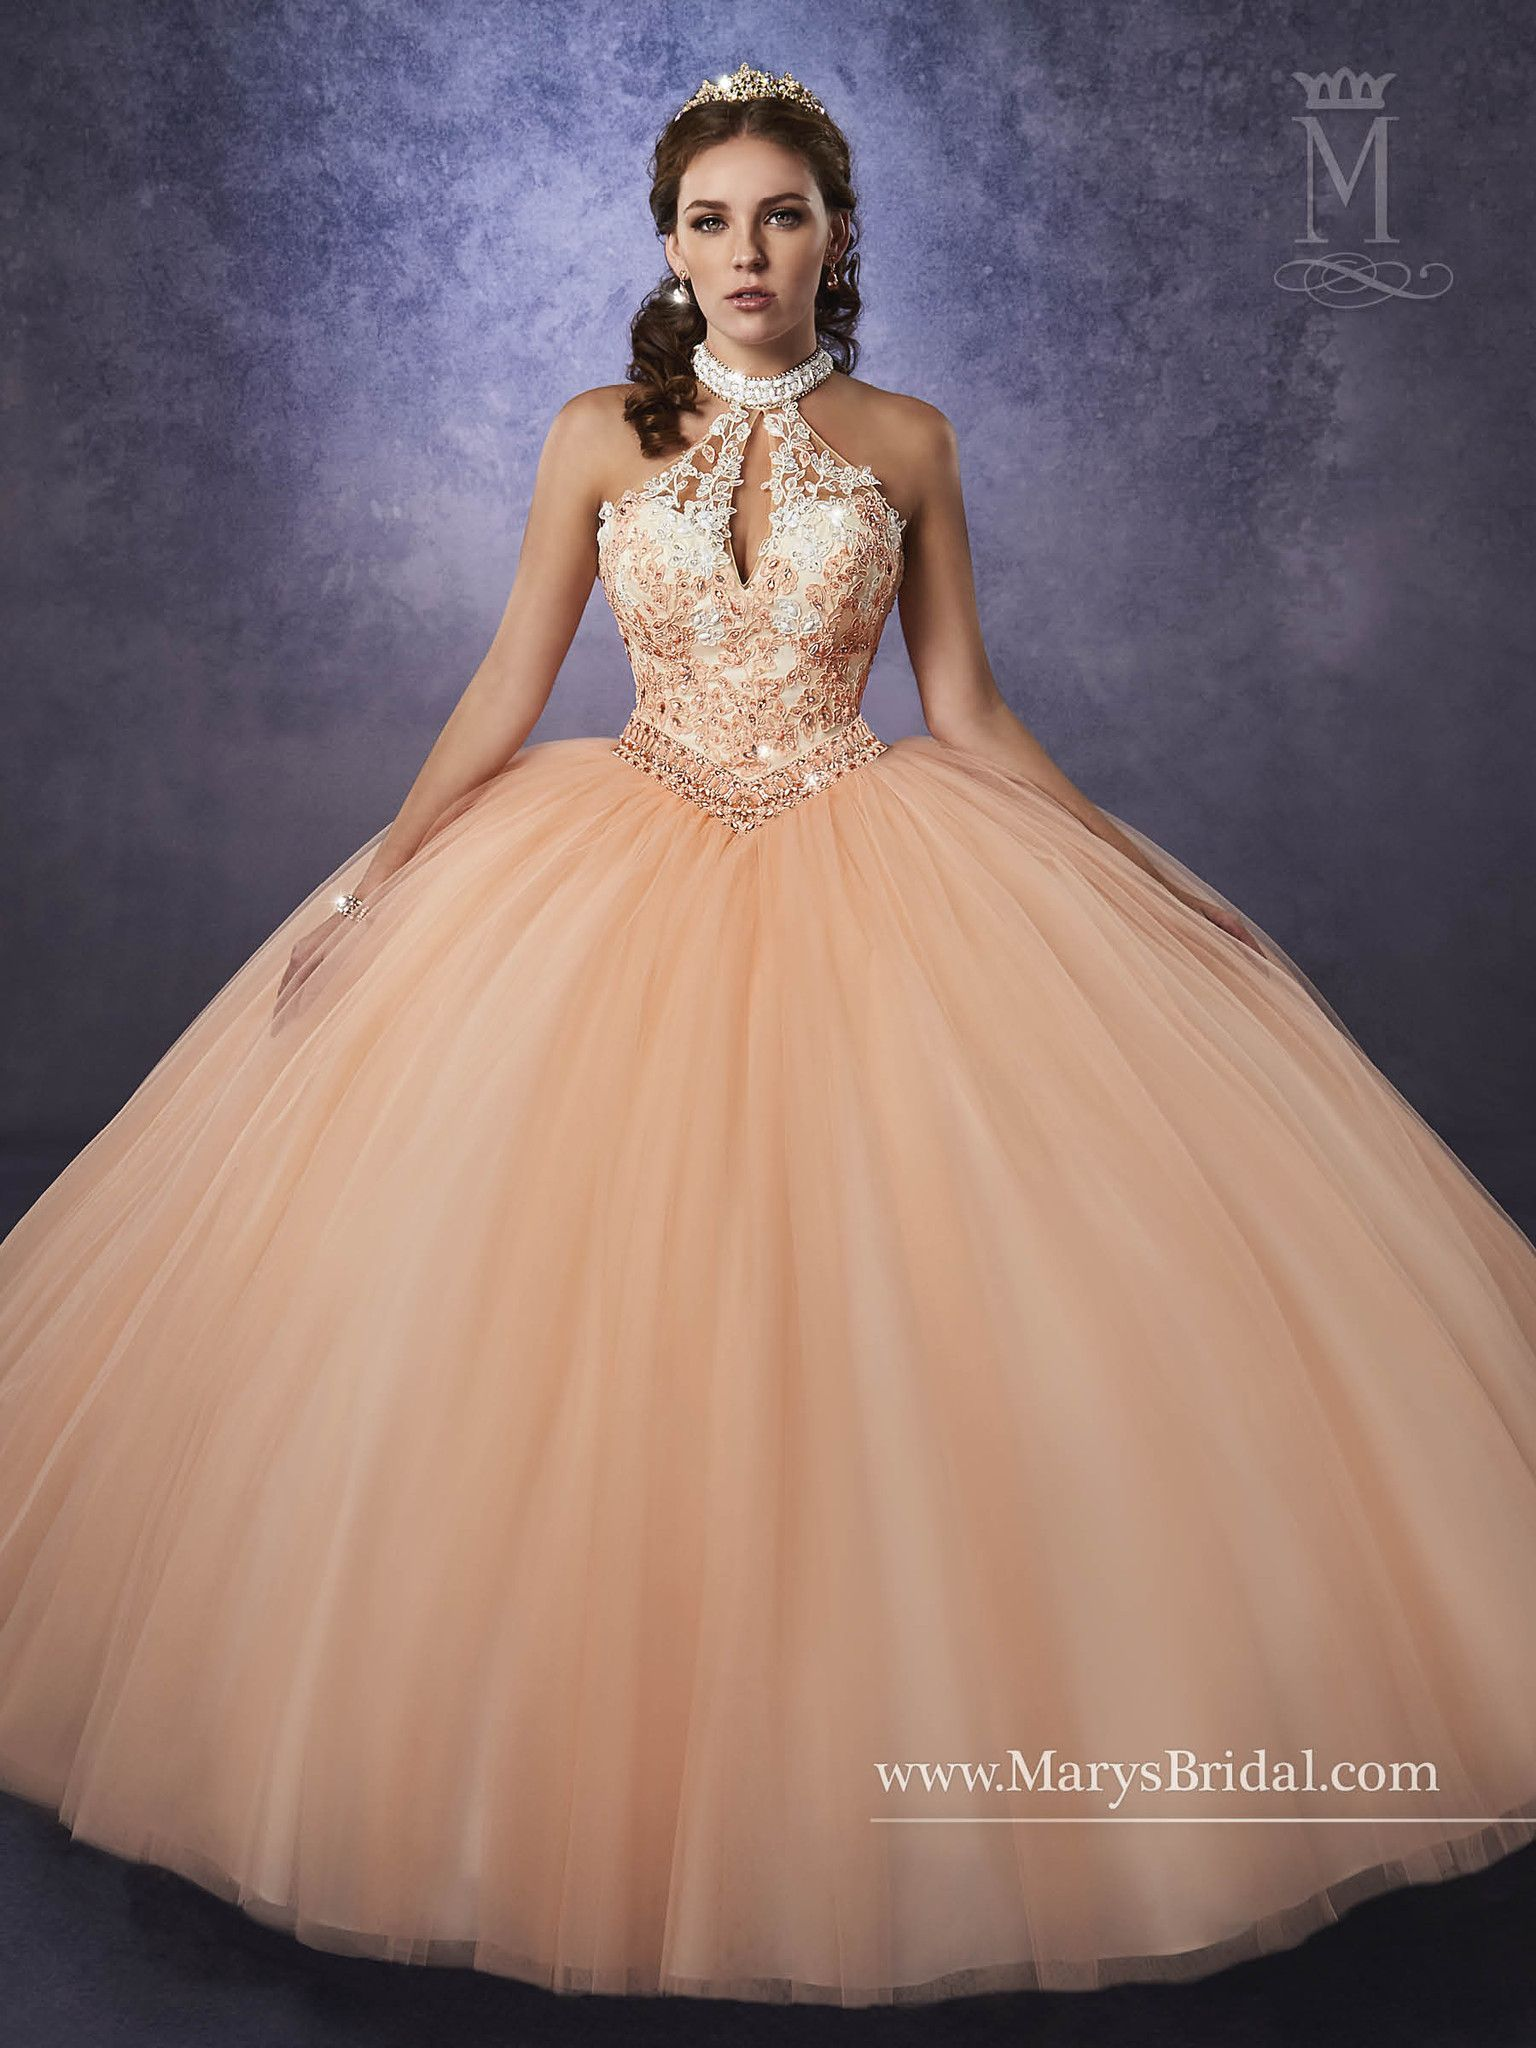 8ba933049dc77 Elegant and beautiful, you'll love wearing Mary's Bridal Princess  Collection Quinceanera Dress Style 4Q487 at your Sweet 15 party or at any  formal event.